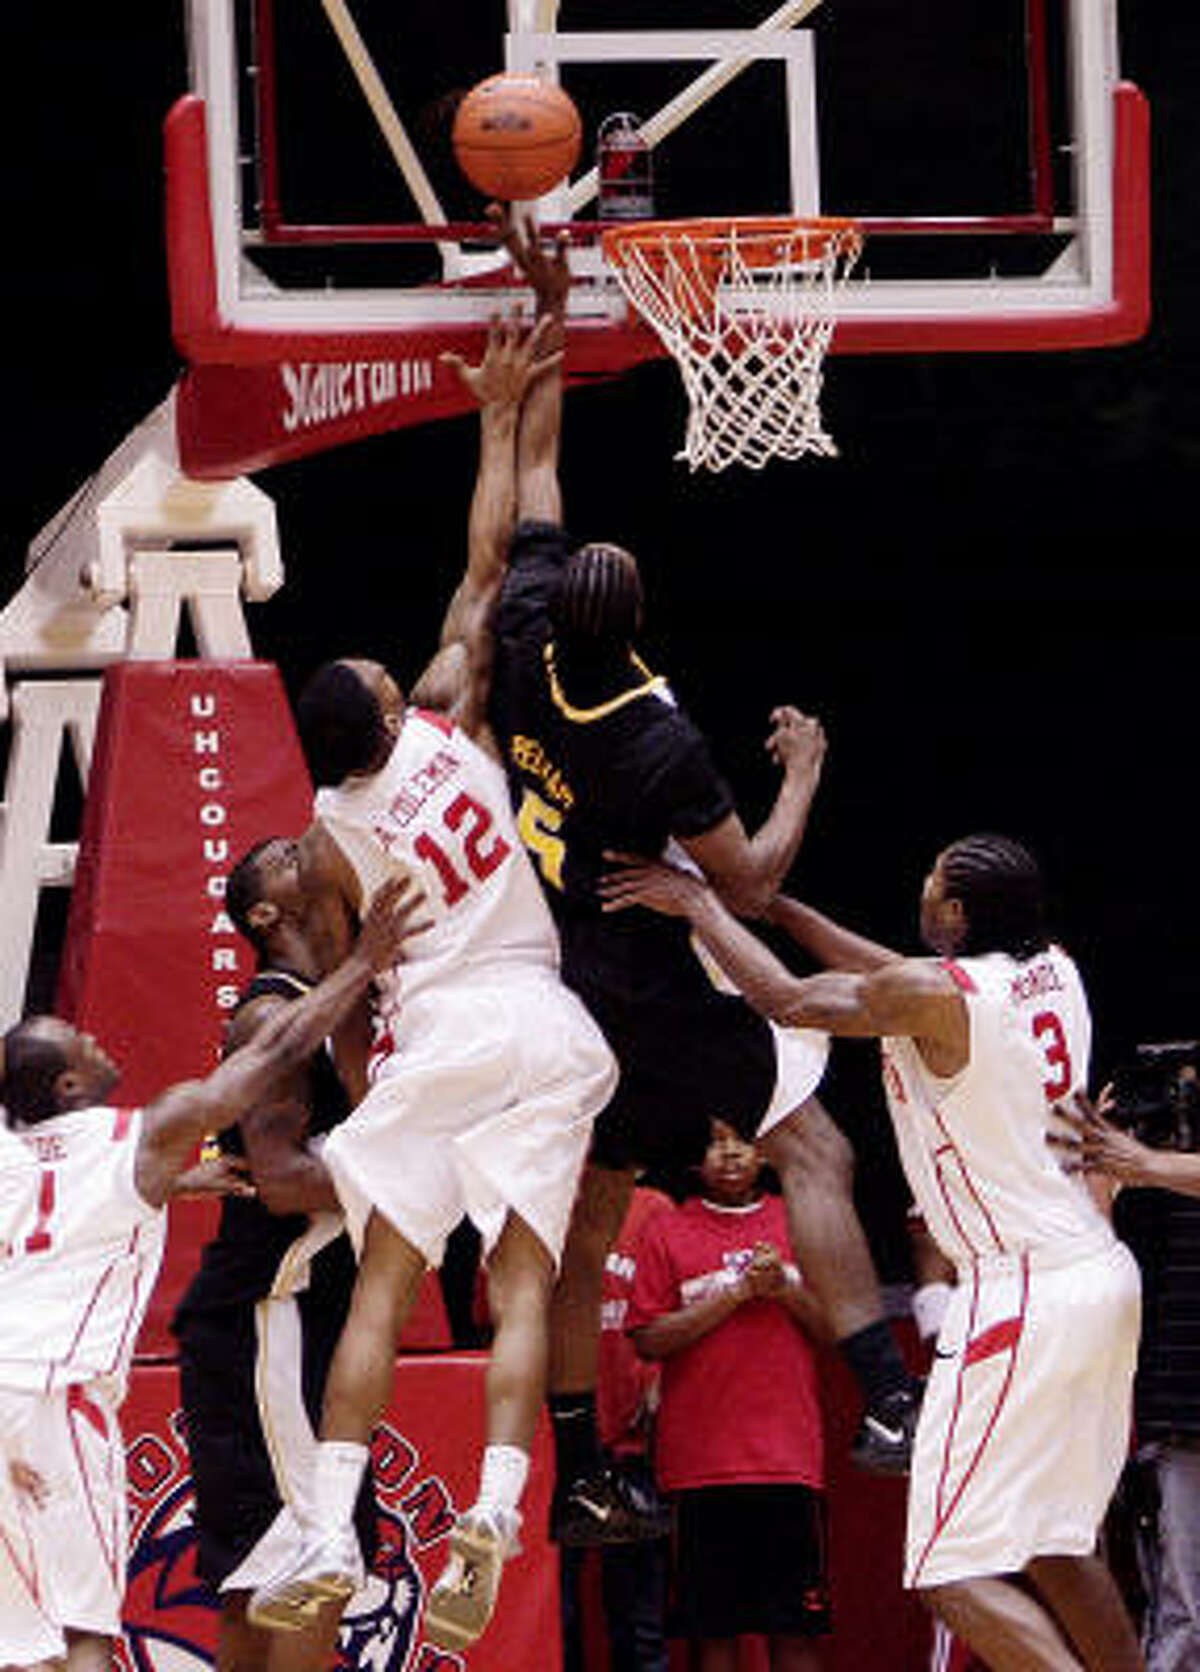 Southern Miss' Torye Pelham puts back a shot at the buzzer to send the Golden Eagles to a 57-55 win over UH.